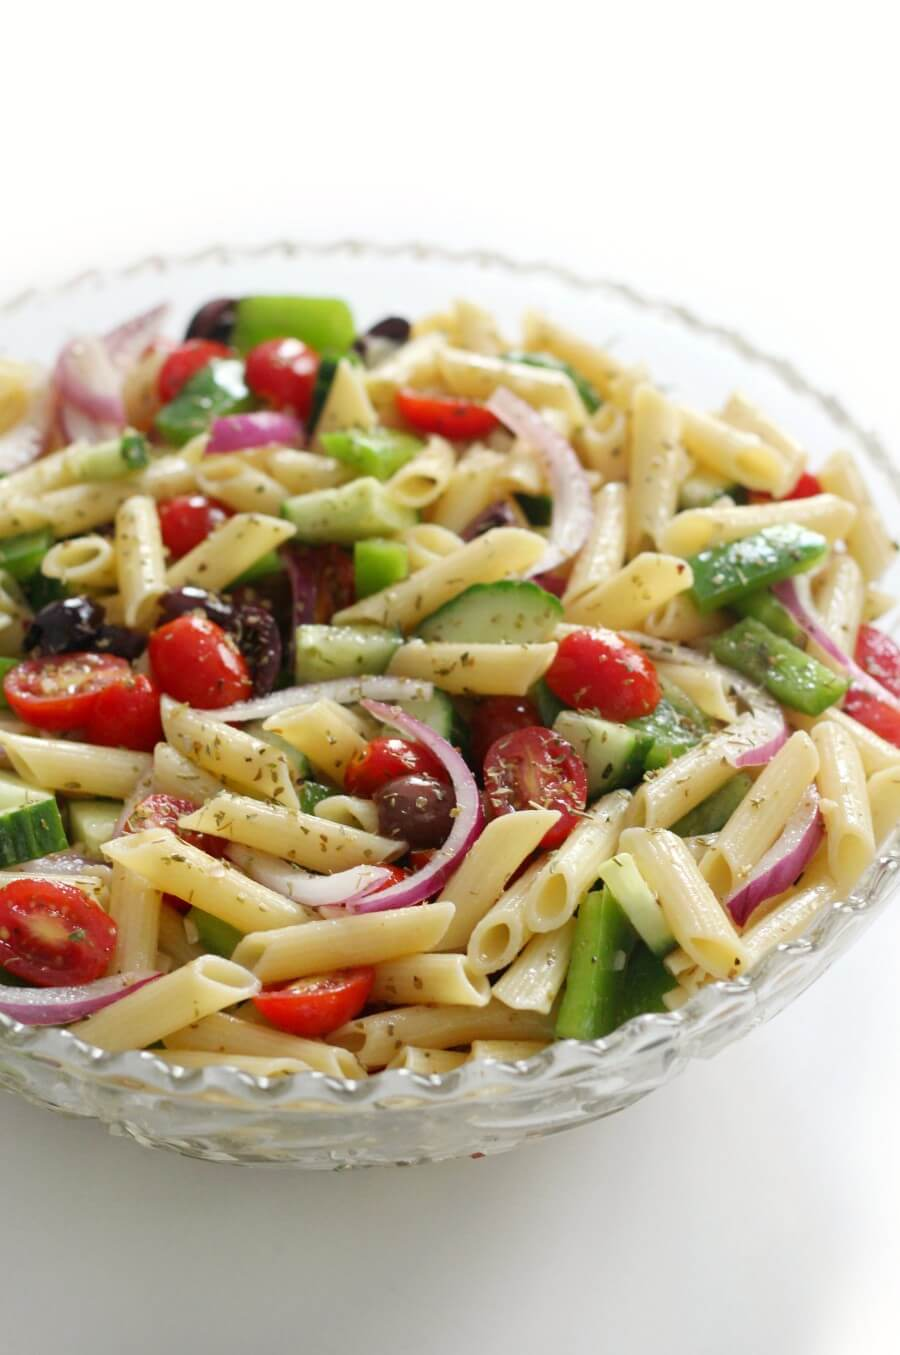 gluten-free greek pasta salad ready to serve in bowl